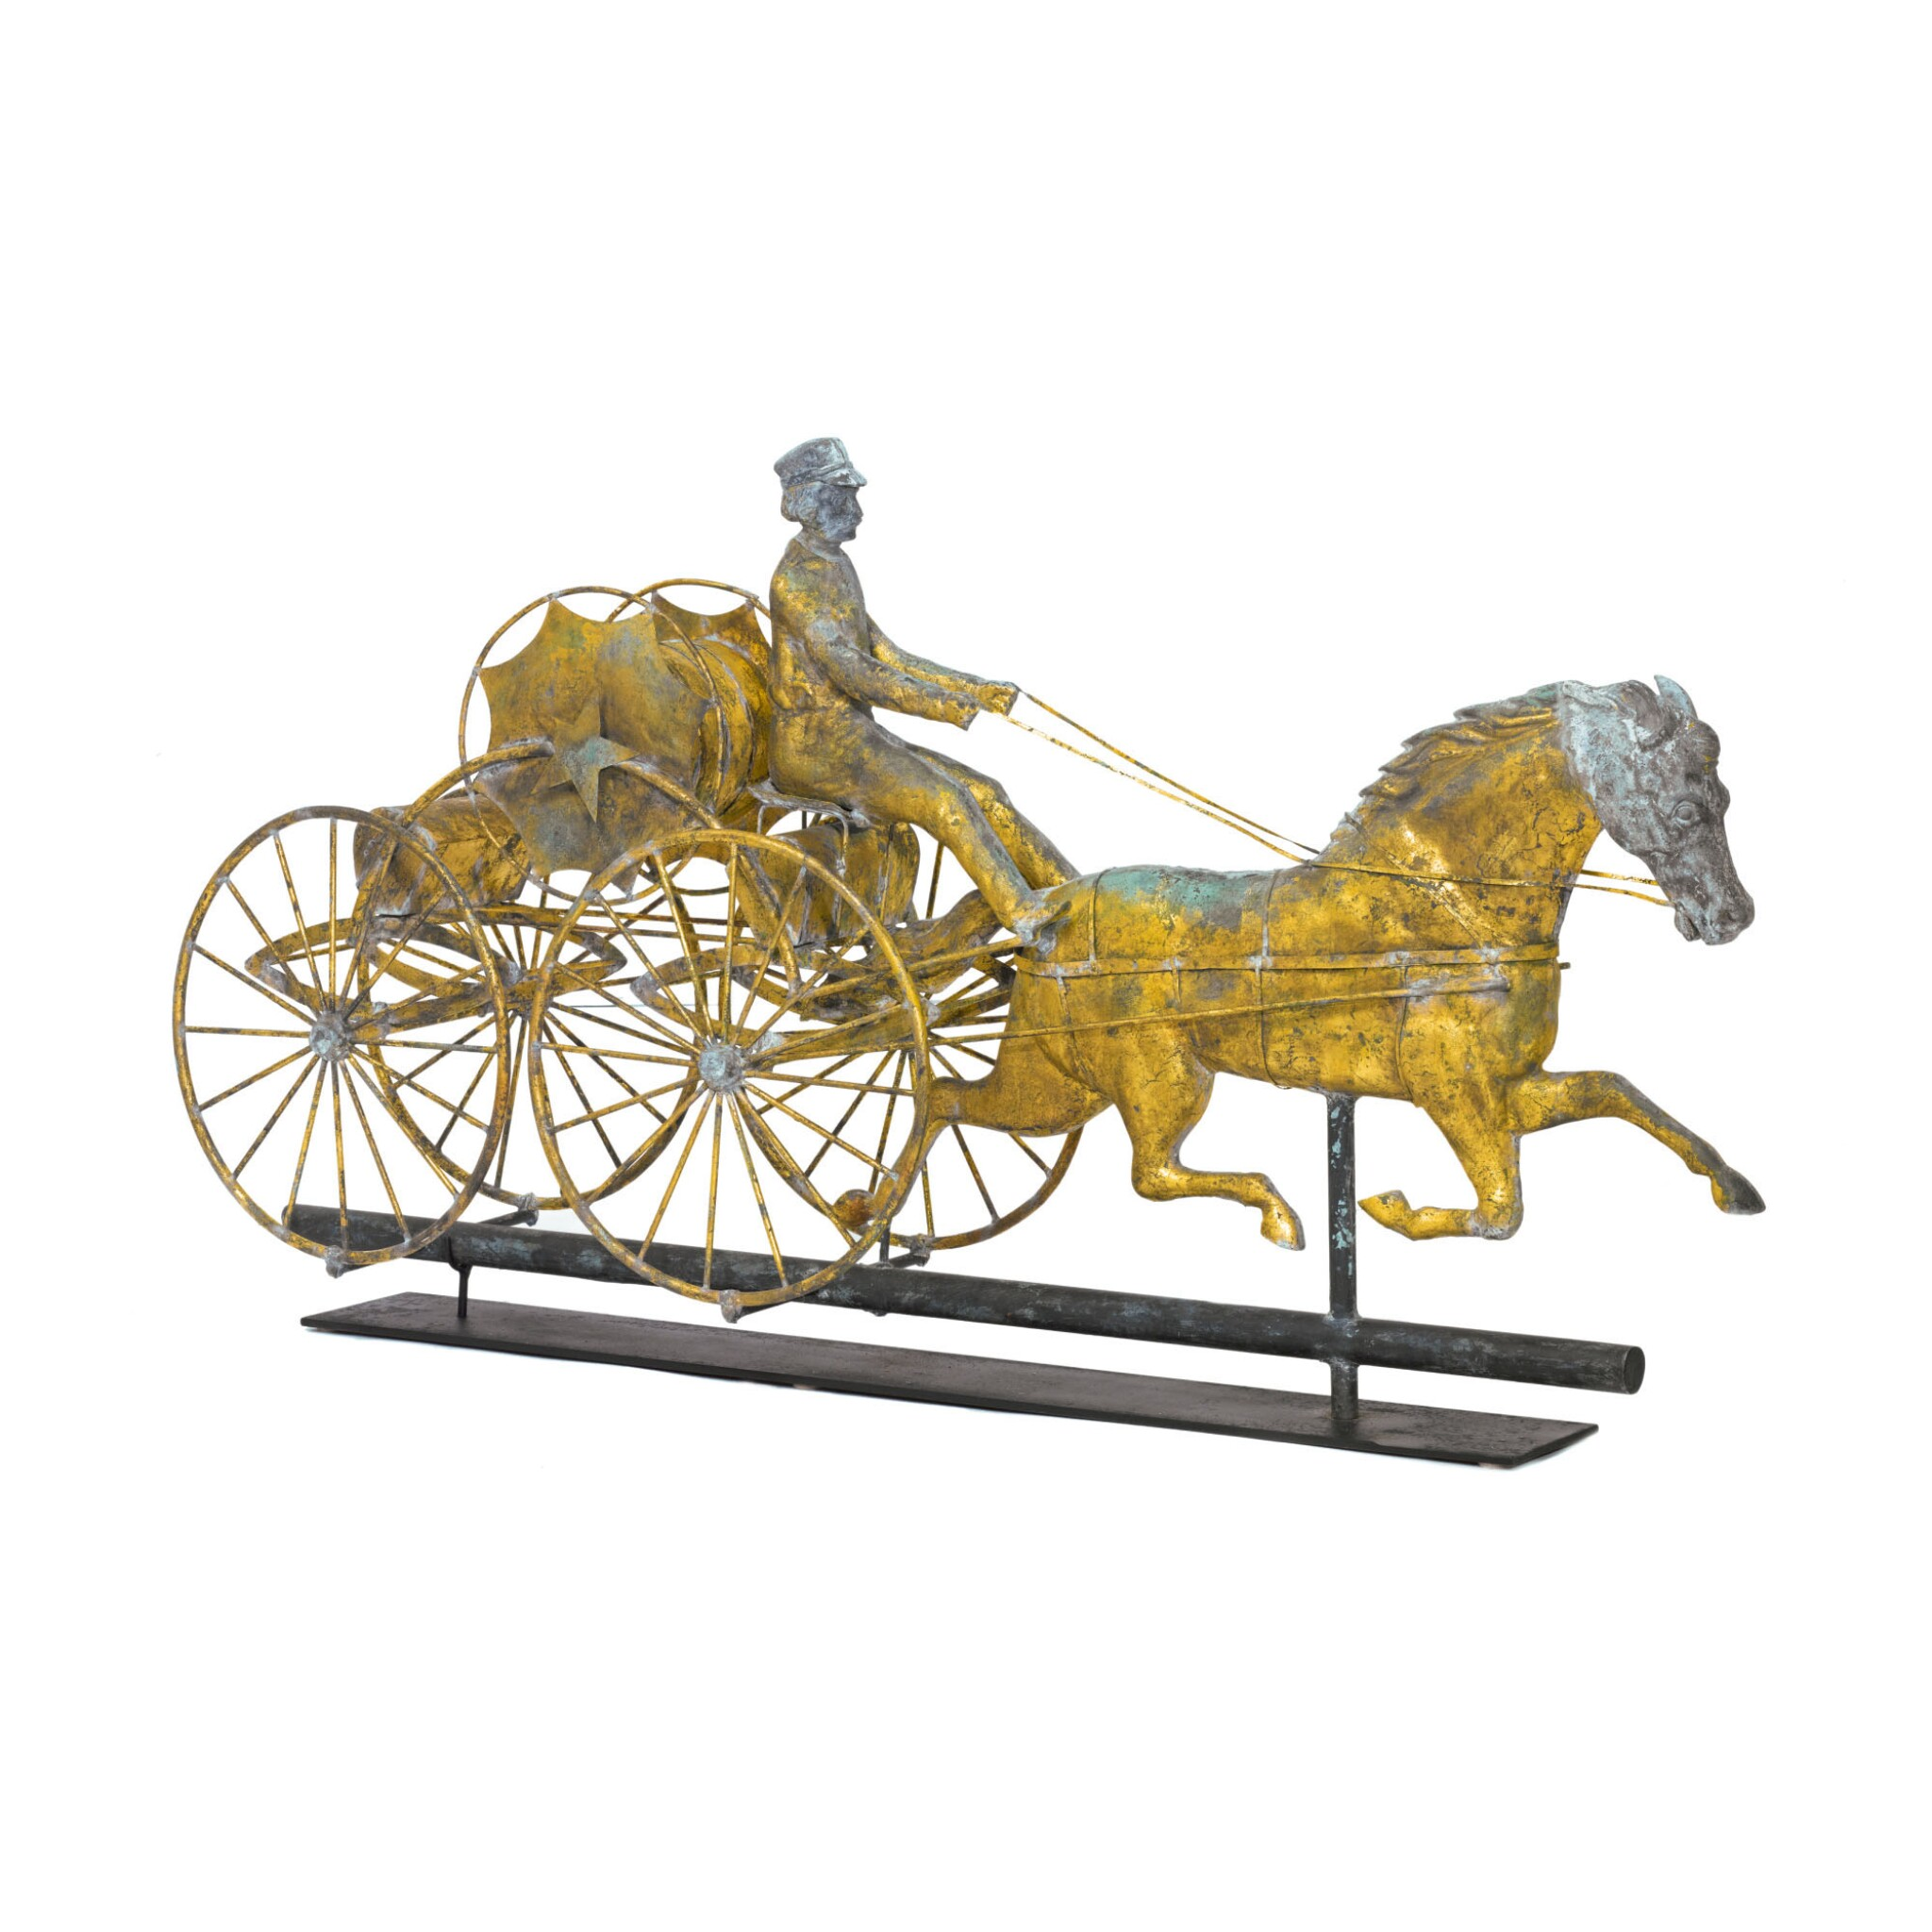 View full screen - View 1 of Lot 21. VERY FINE AND RARE GILT MOLDED SHEET COPPER AND ZINC FIRE PUMPER AND HORSE WEATHERVANE, B. HARRIS & CO, BOSTON, MASSACHUSETTS, CIRCA 1885.